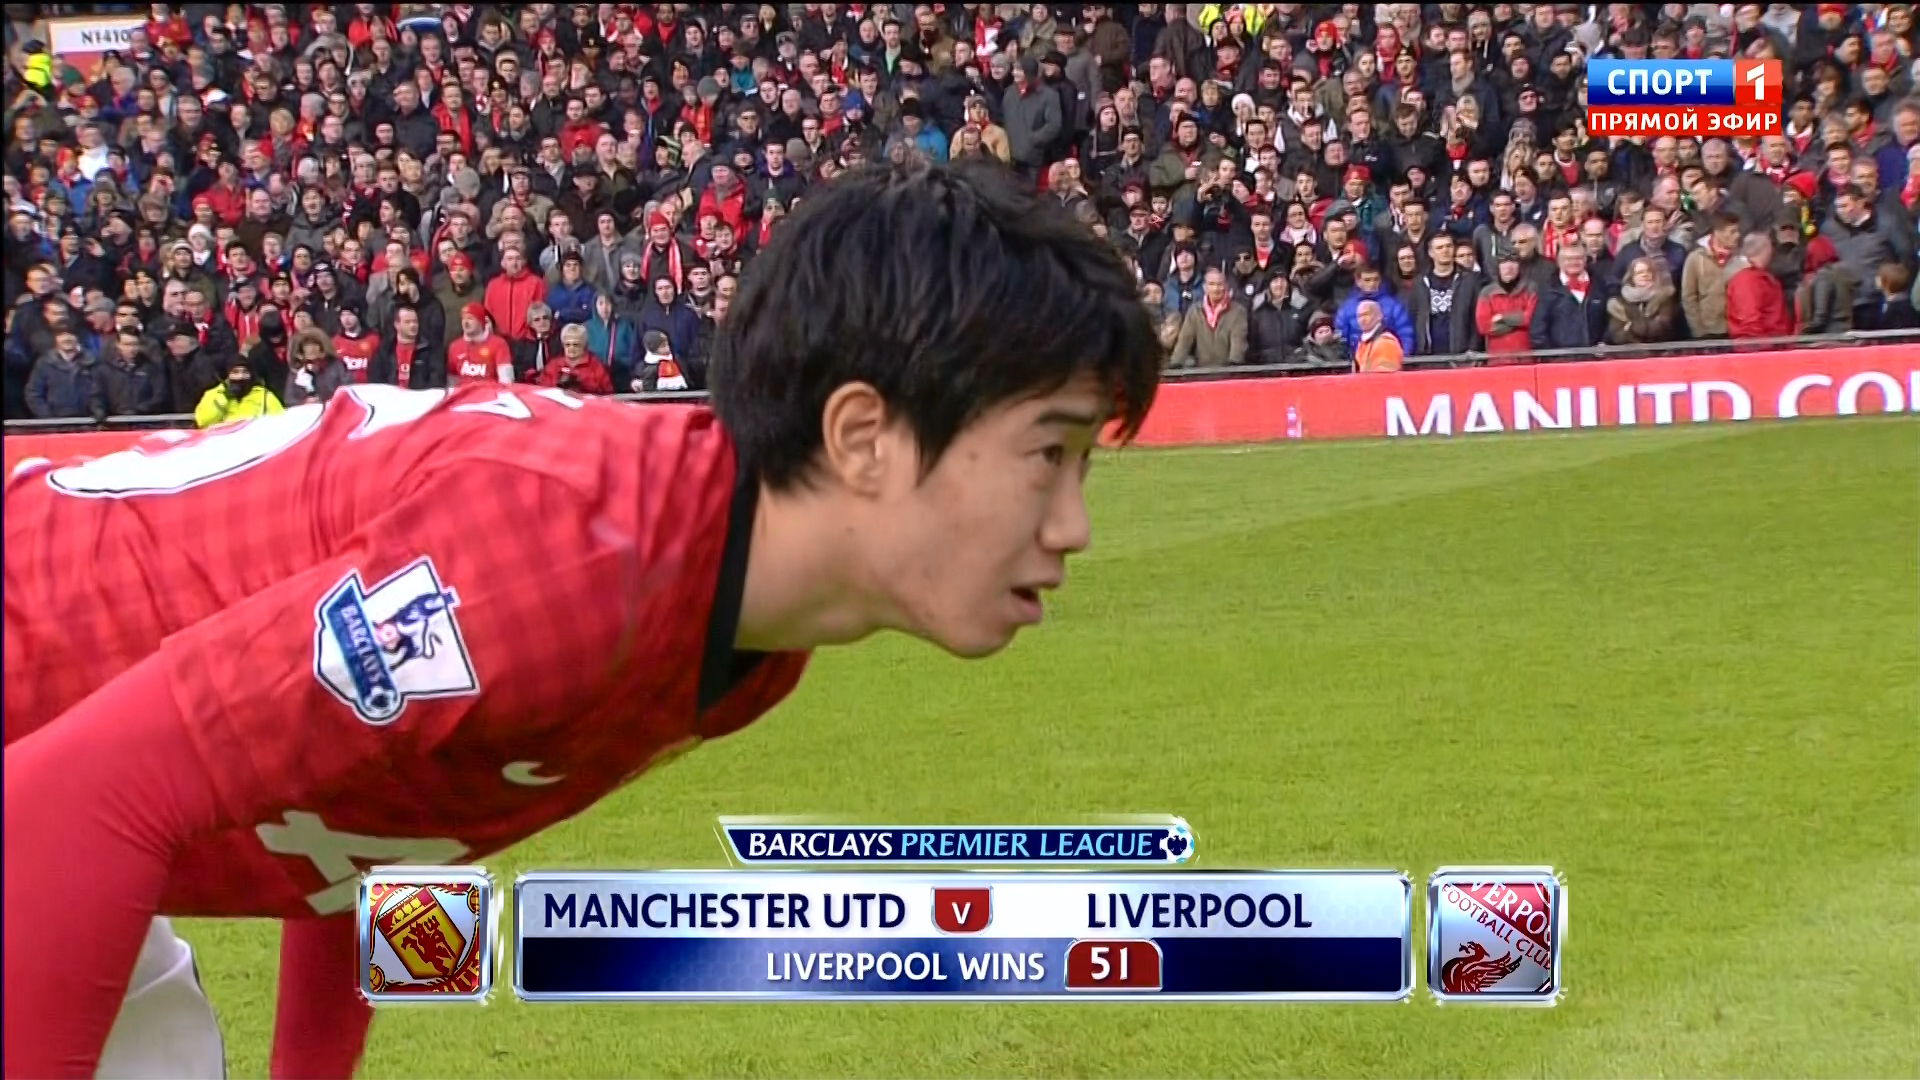 EPL - Manchester United - Liverpool  Full Match 